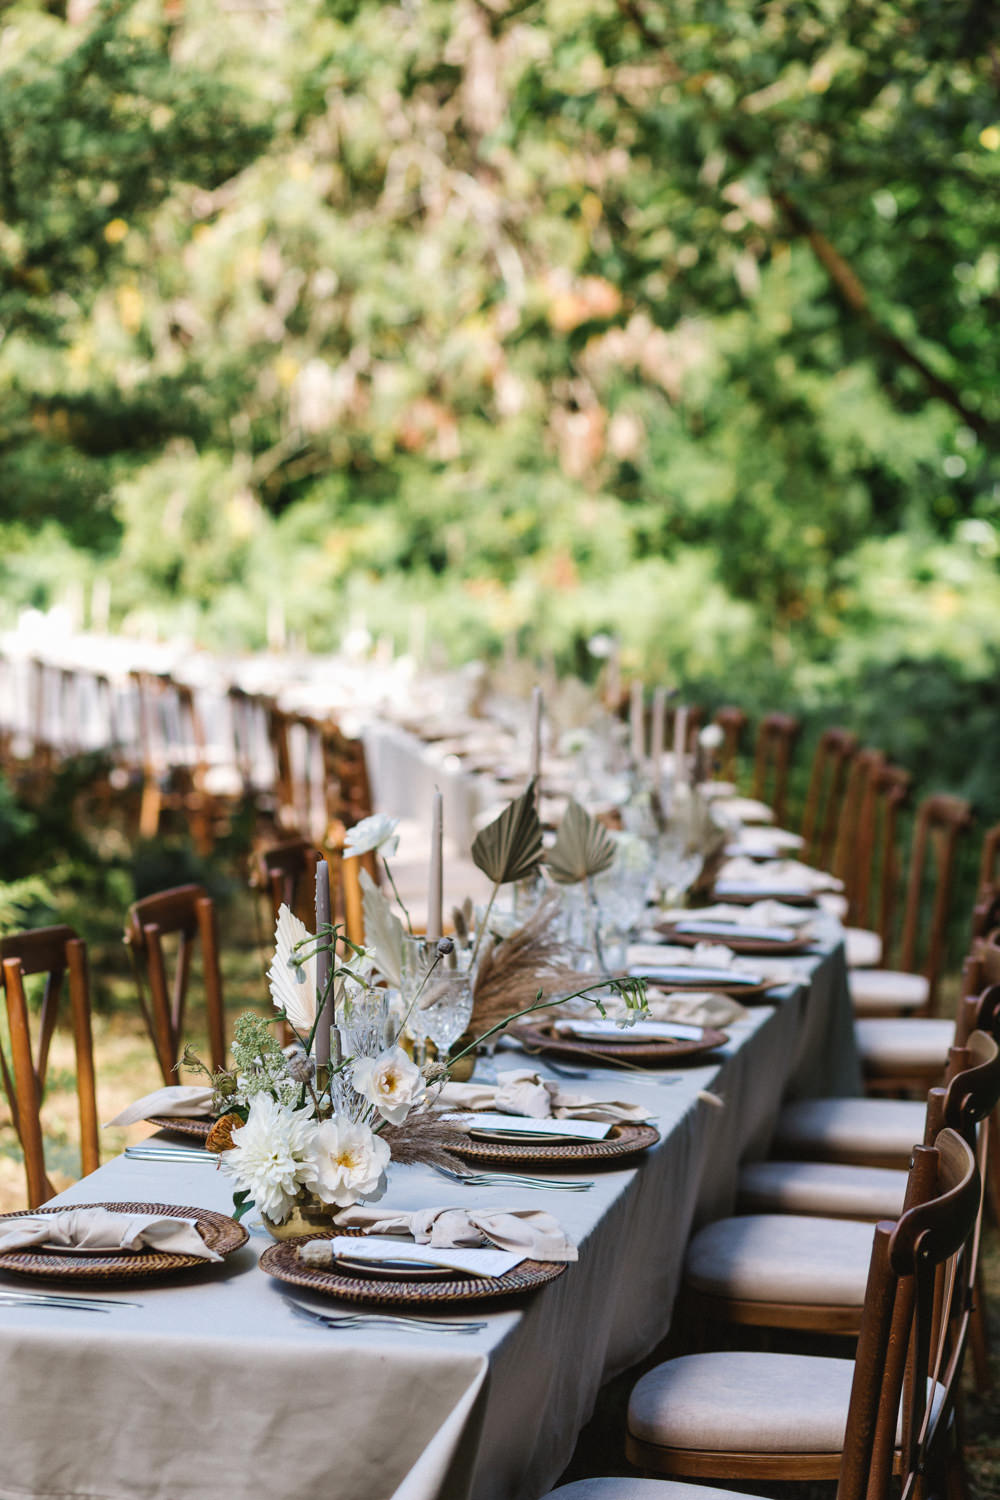 Curved Table Semi Circle Tablescape Set Up Decor Woods Woodland Boconnoc Wedding Debs Alexander Photography